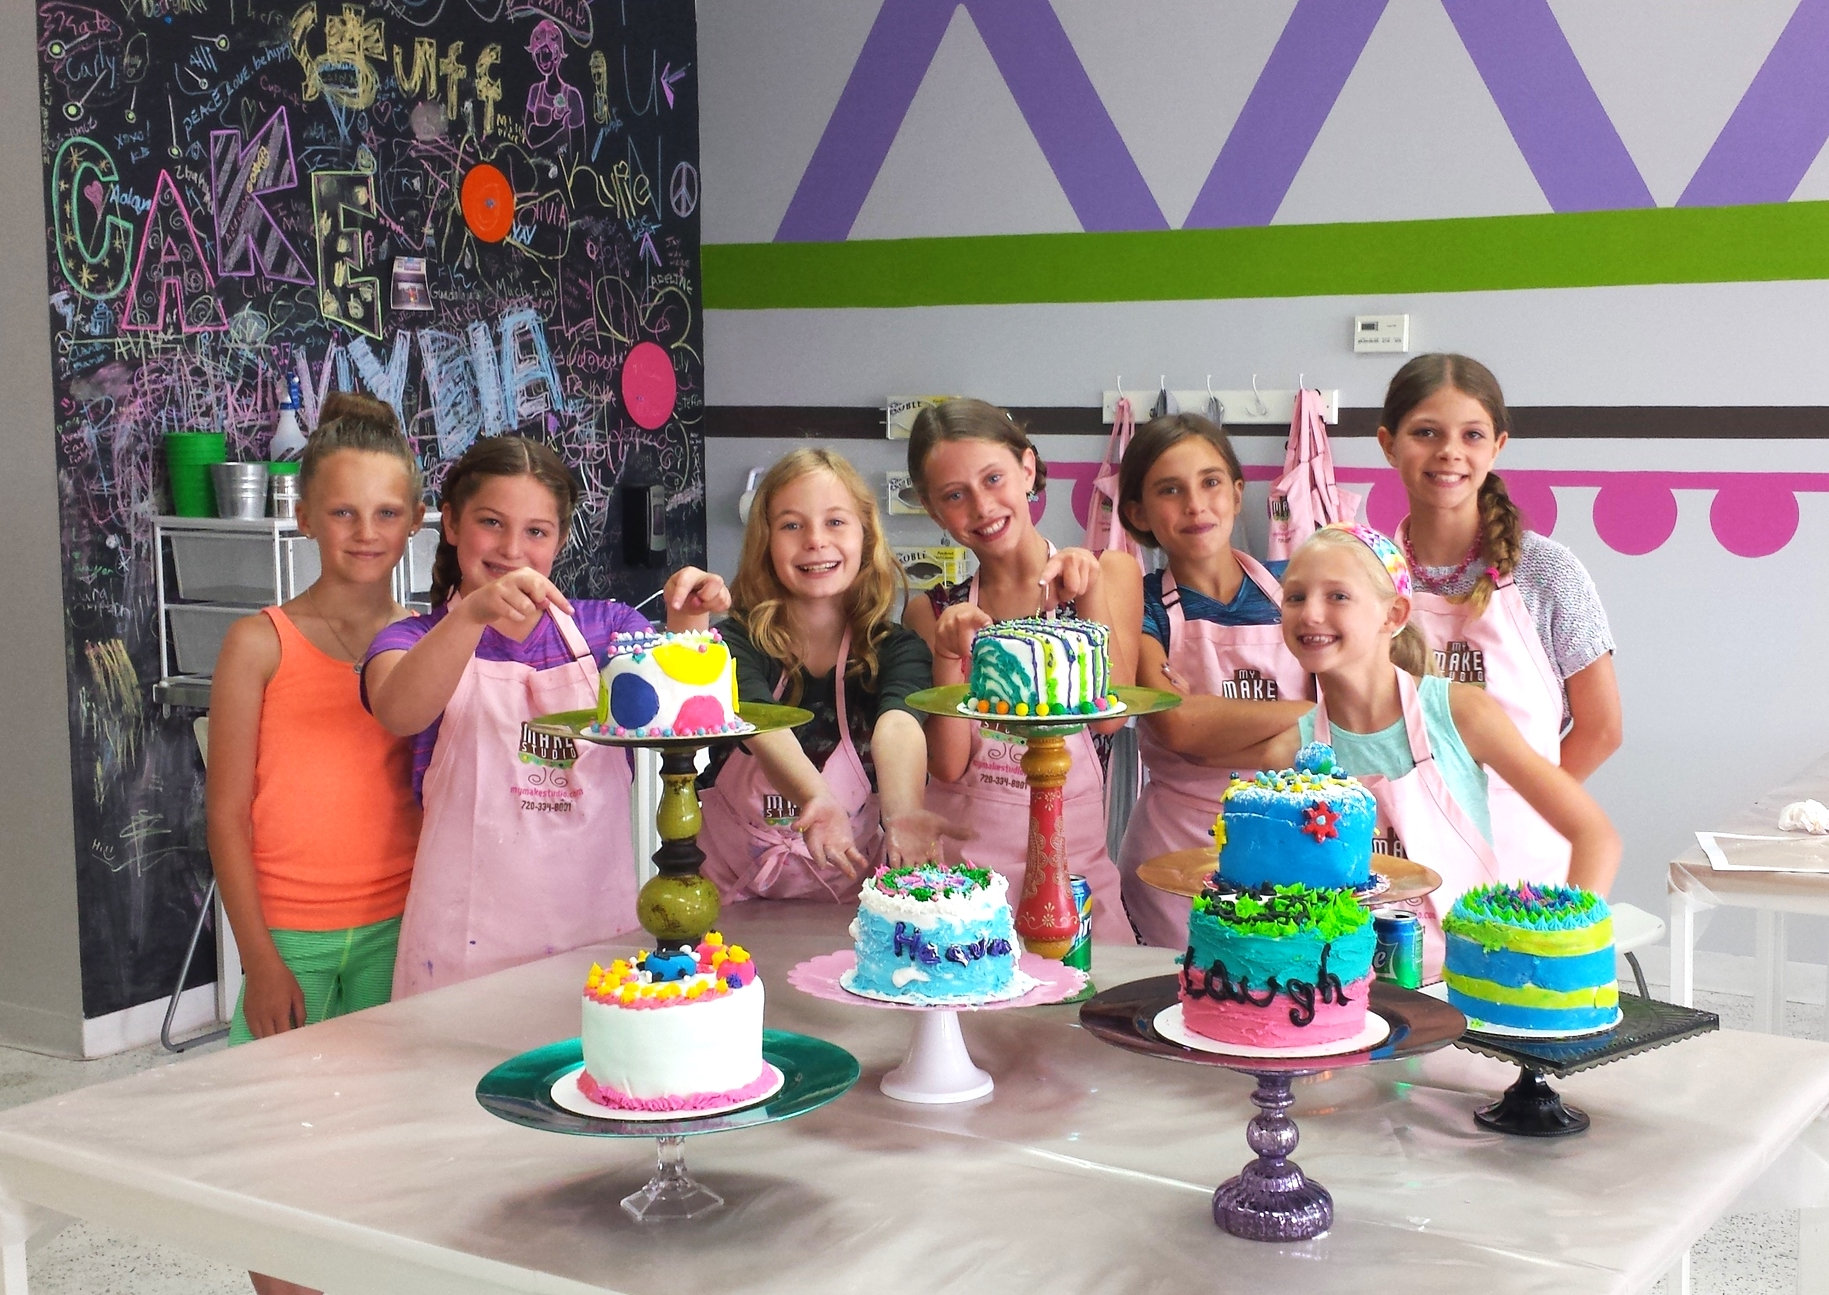 Enjoy a little competitive fun with friends at a  CAKE BATTLE PARTY .